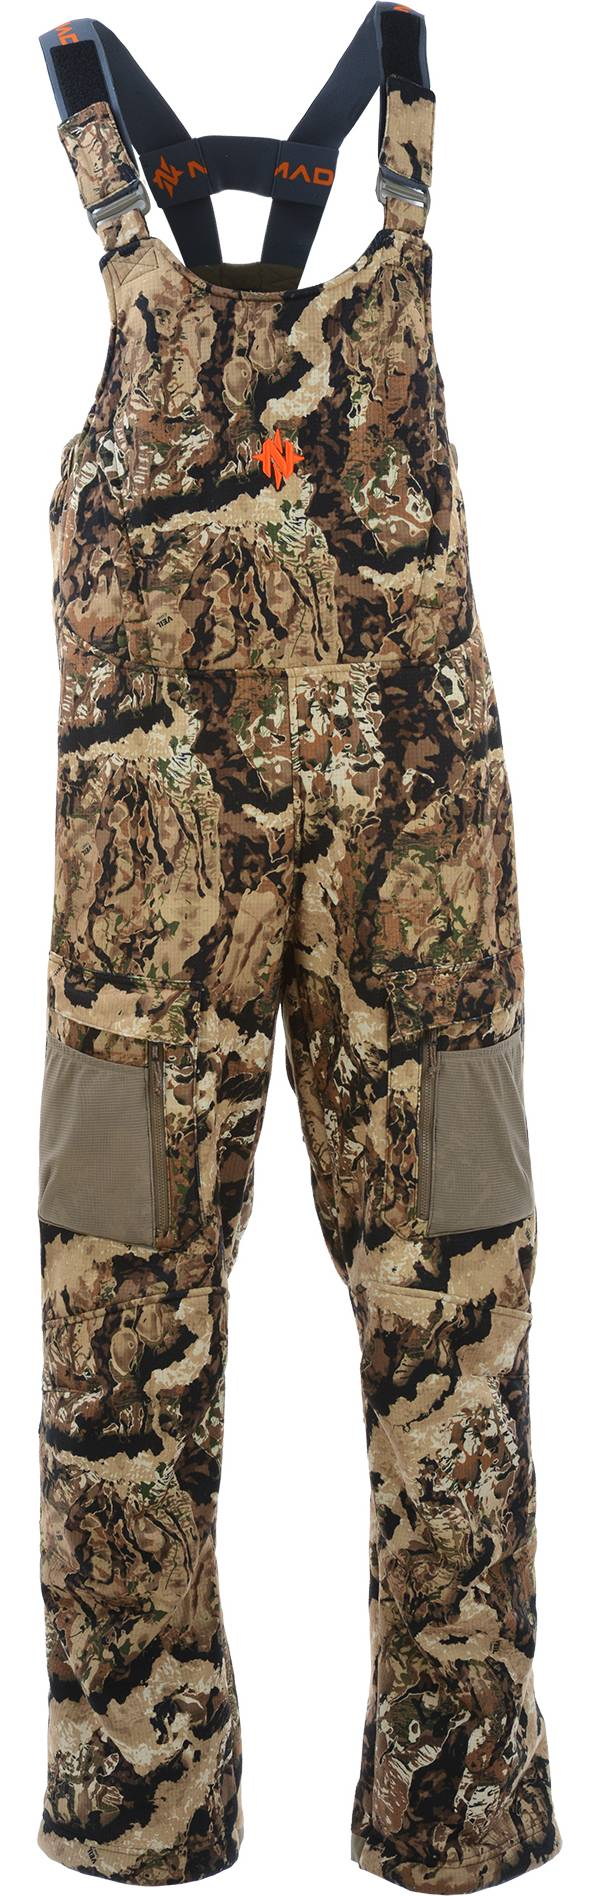 NOMAD Men's Scrape Hunting Bibs product image